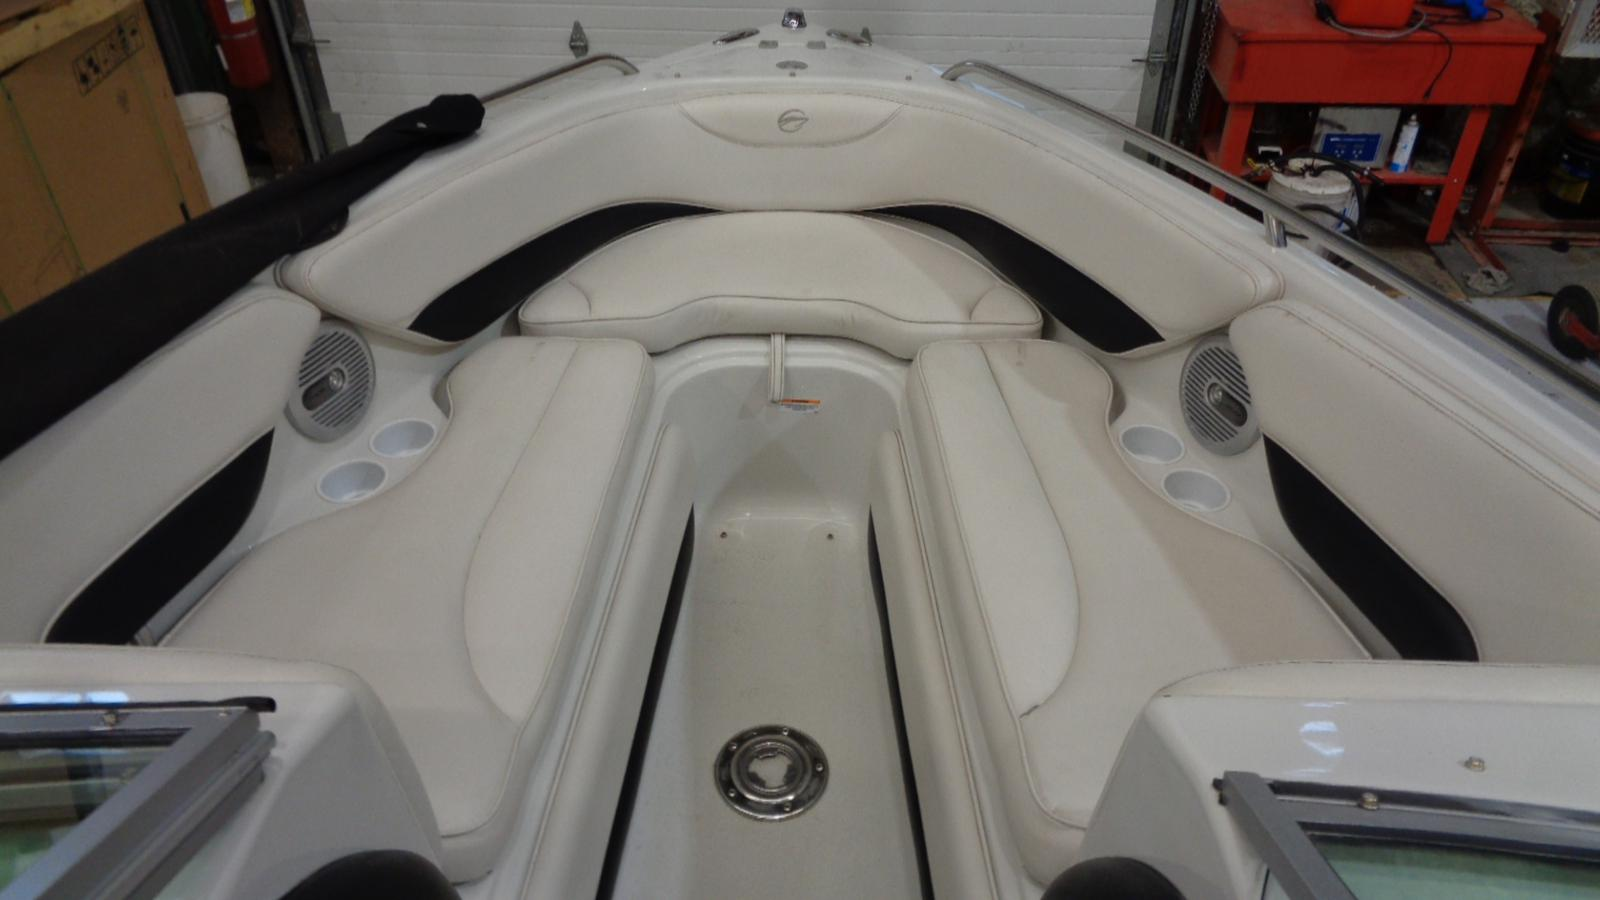 2005 Crownline boat for sale, model of the boat is 225 BR & Image # 4 of 9